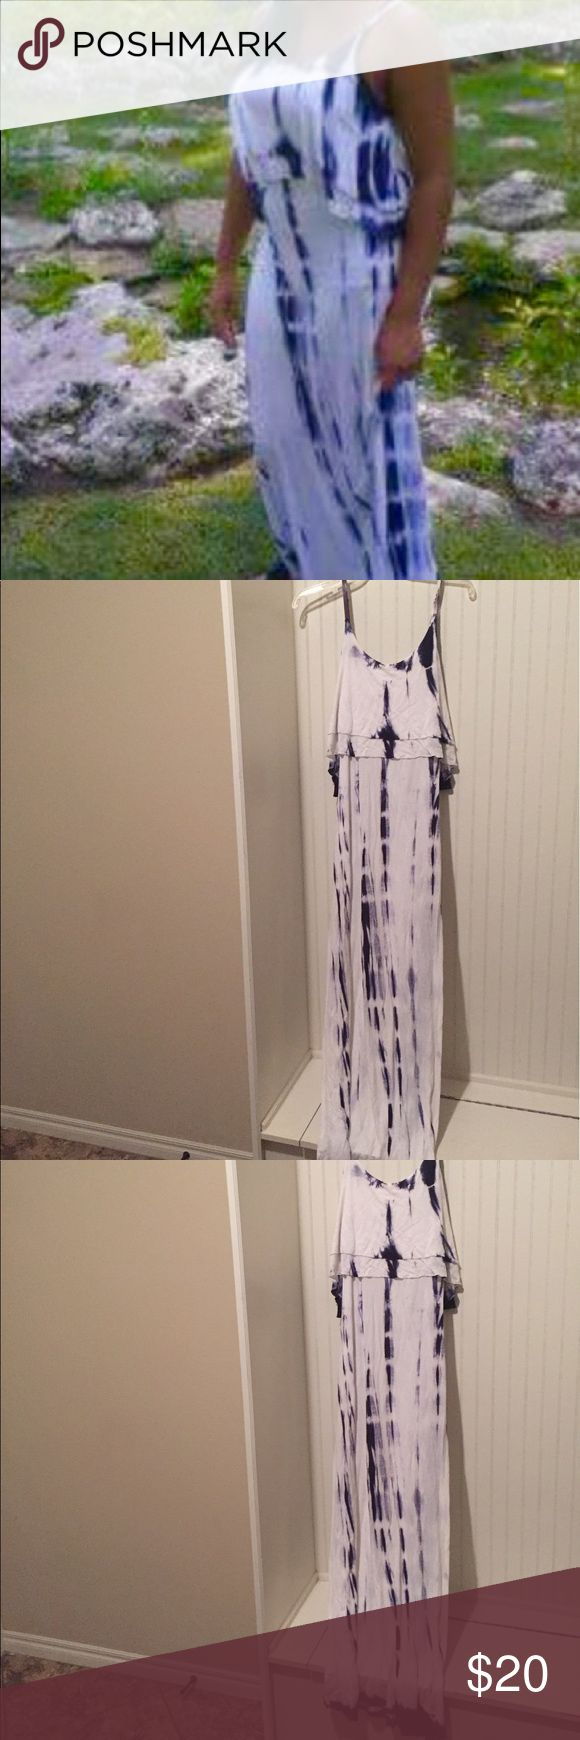 Tie dye maxi dress Comfortable white and navy blue tie dye maxi dress Dresses Maxi